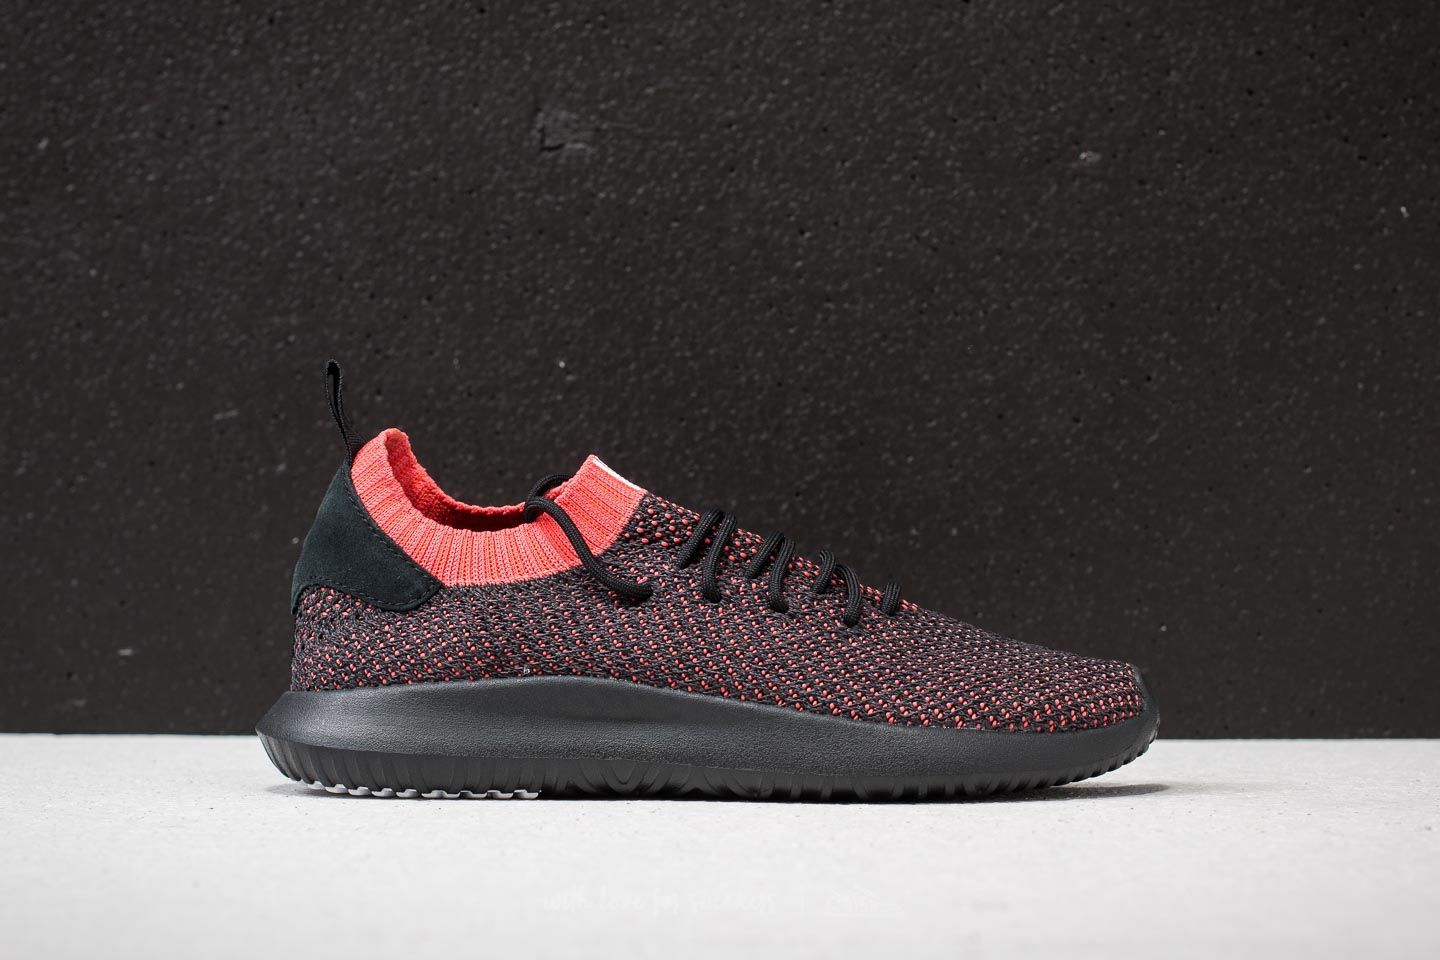 dd6cb5025039 adidas Tubular Shadow Primeknit Core Black  Core Black  Trace Scarlet at a  great price